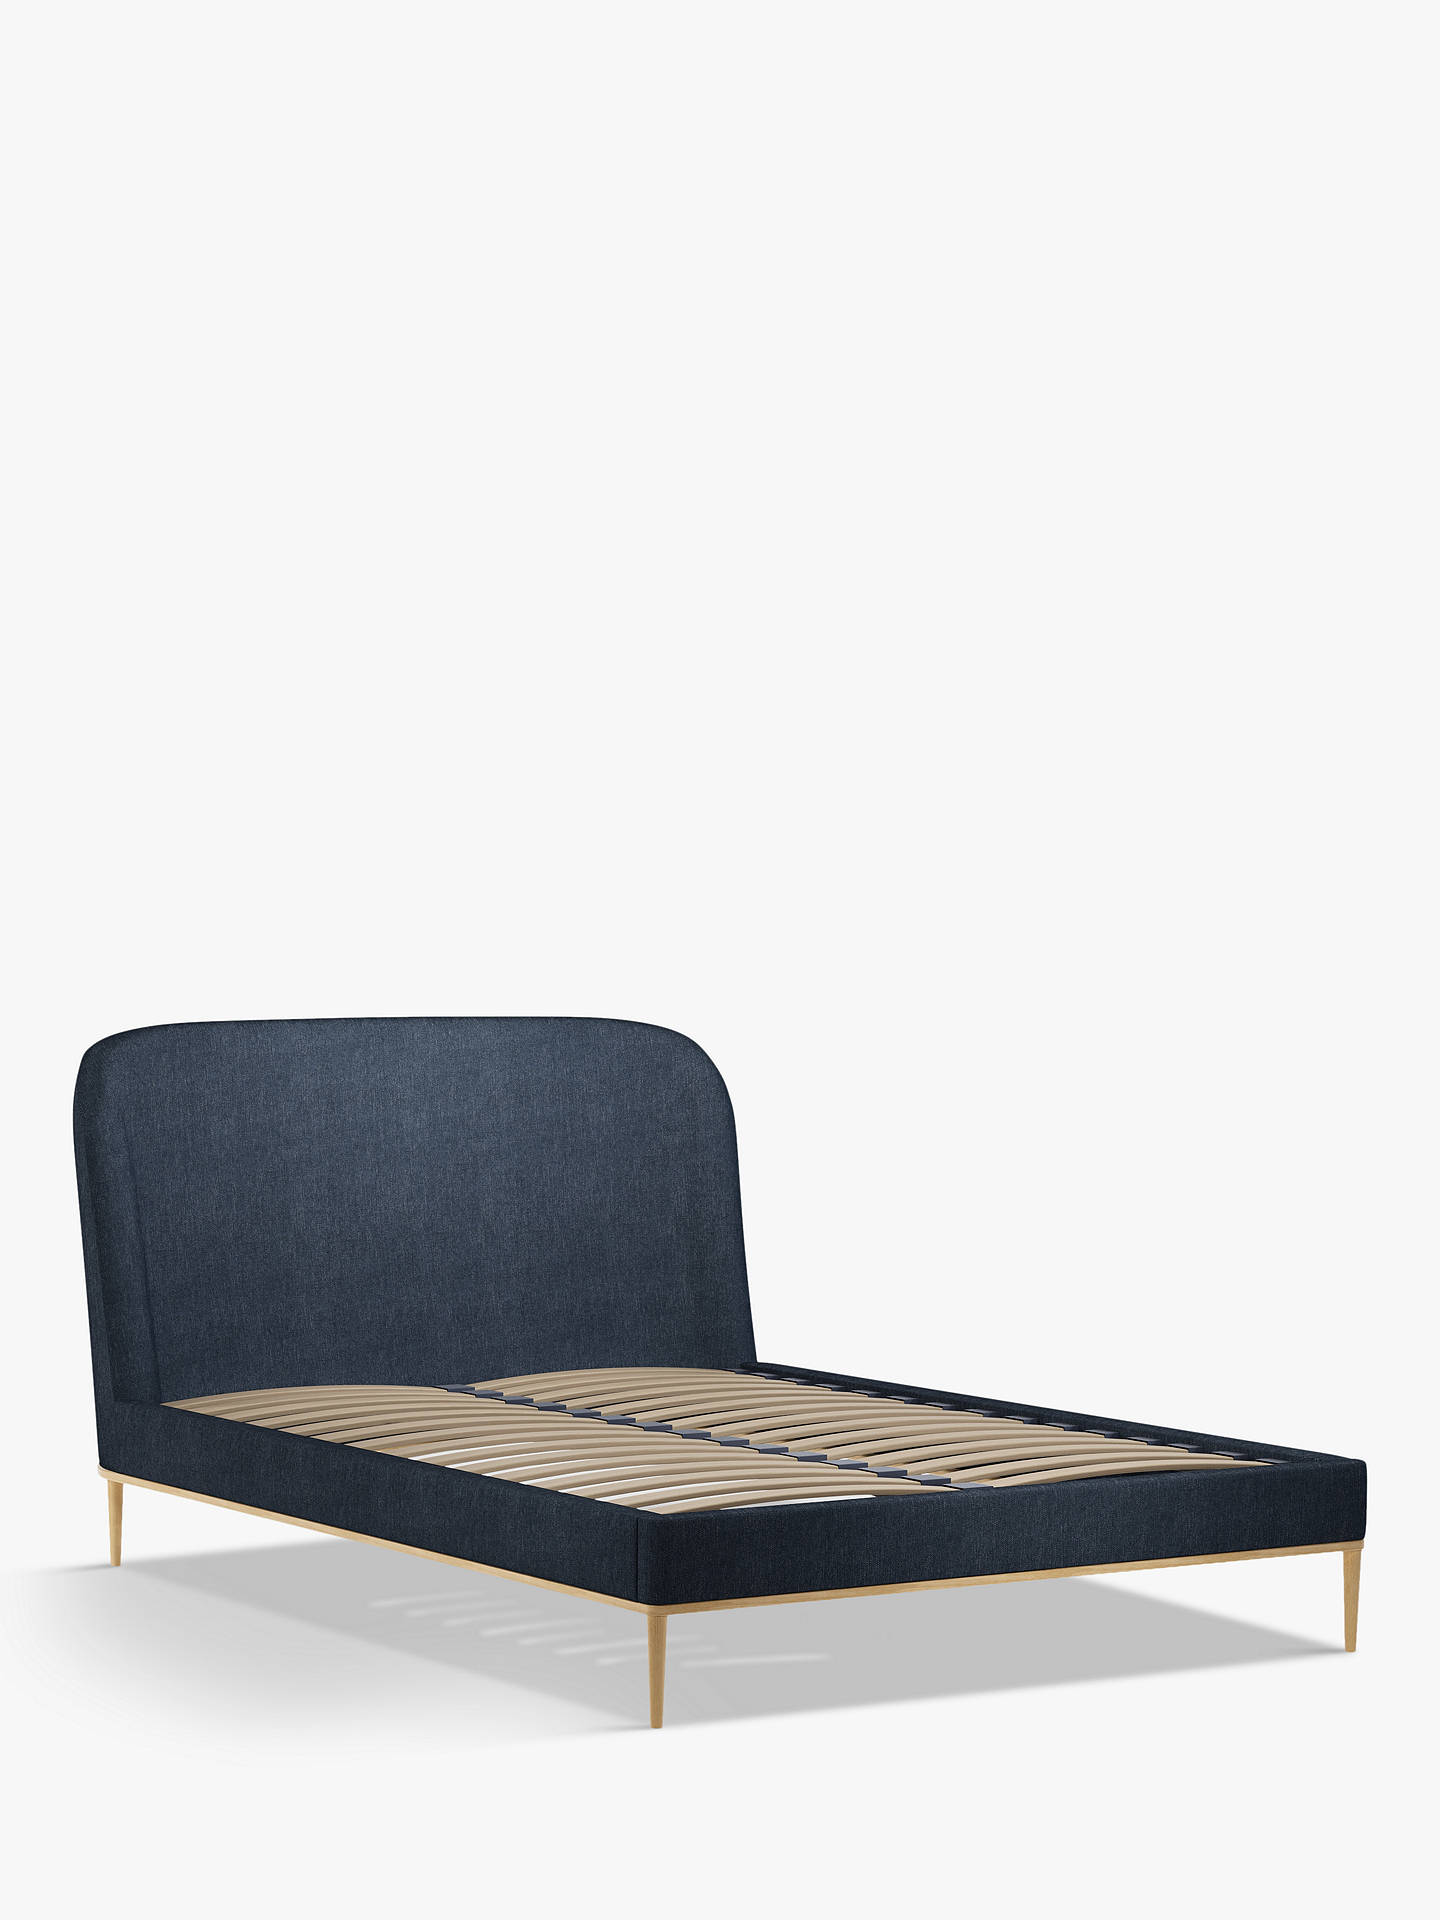 Buy John Lewis & Partners Show-Wood Upholstered Bed Frame, Double, Erin Midnight Online at johnlewis.com